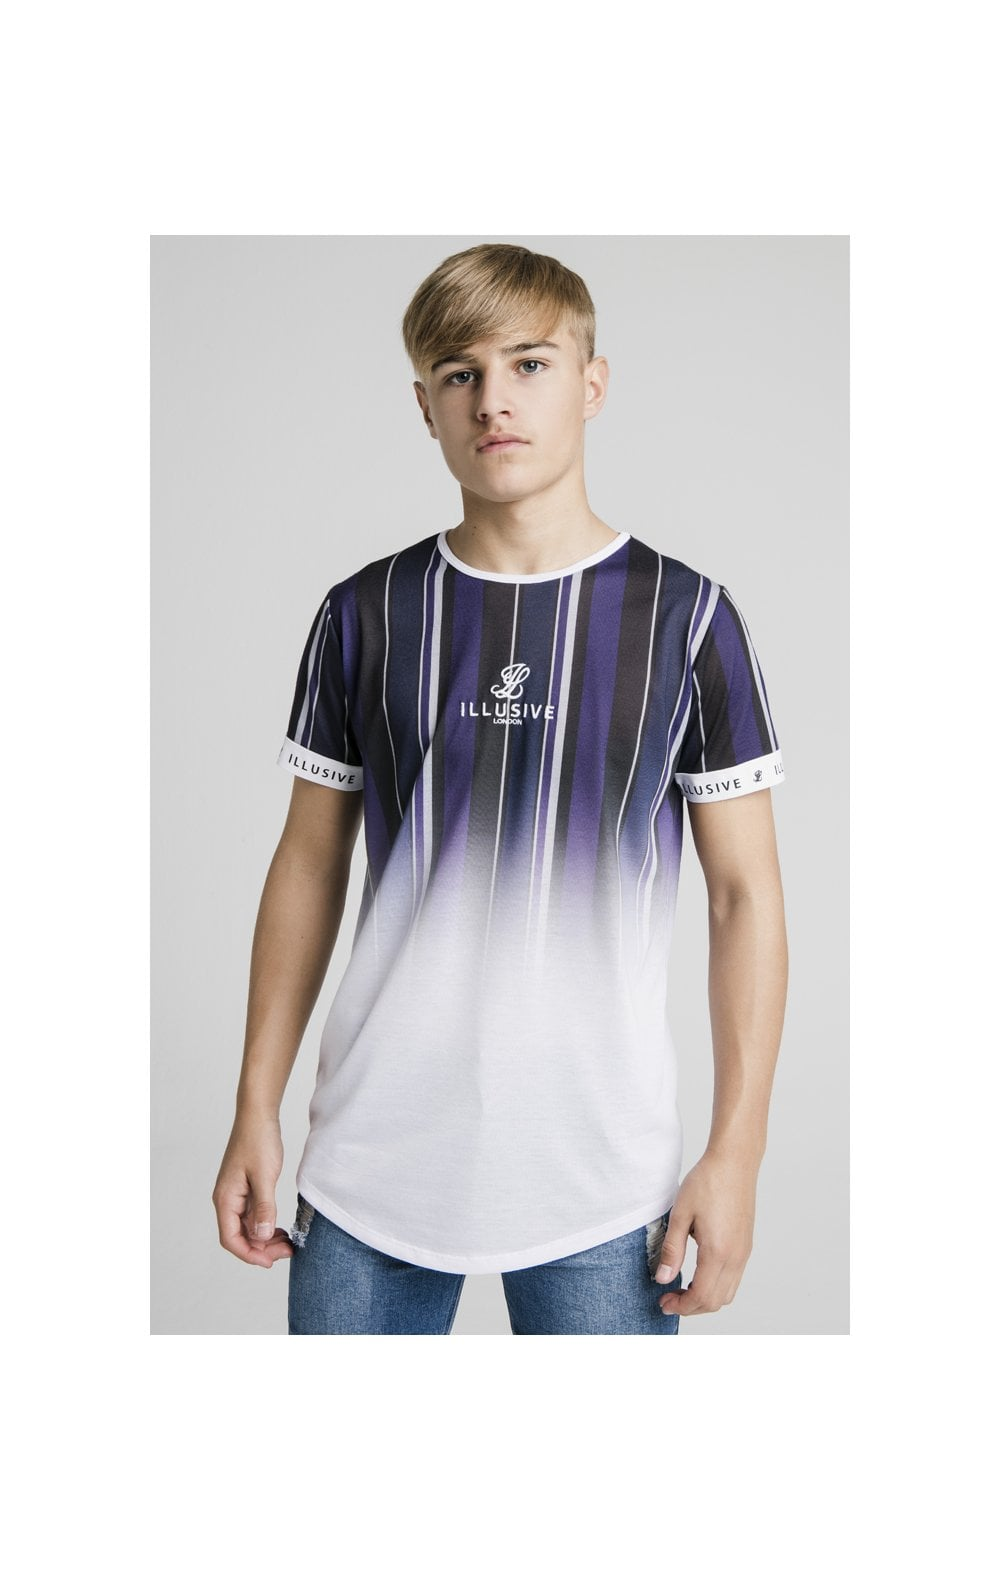 Load image into Gallery viewer, Illusive London Fade Stripe Tech Tee - Navy, Purple, Grey & White (1)